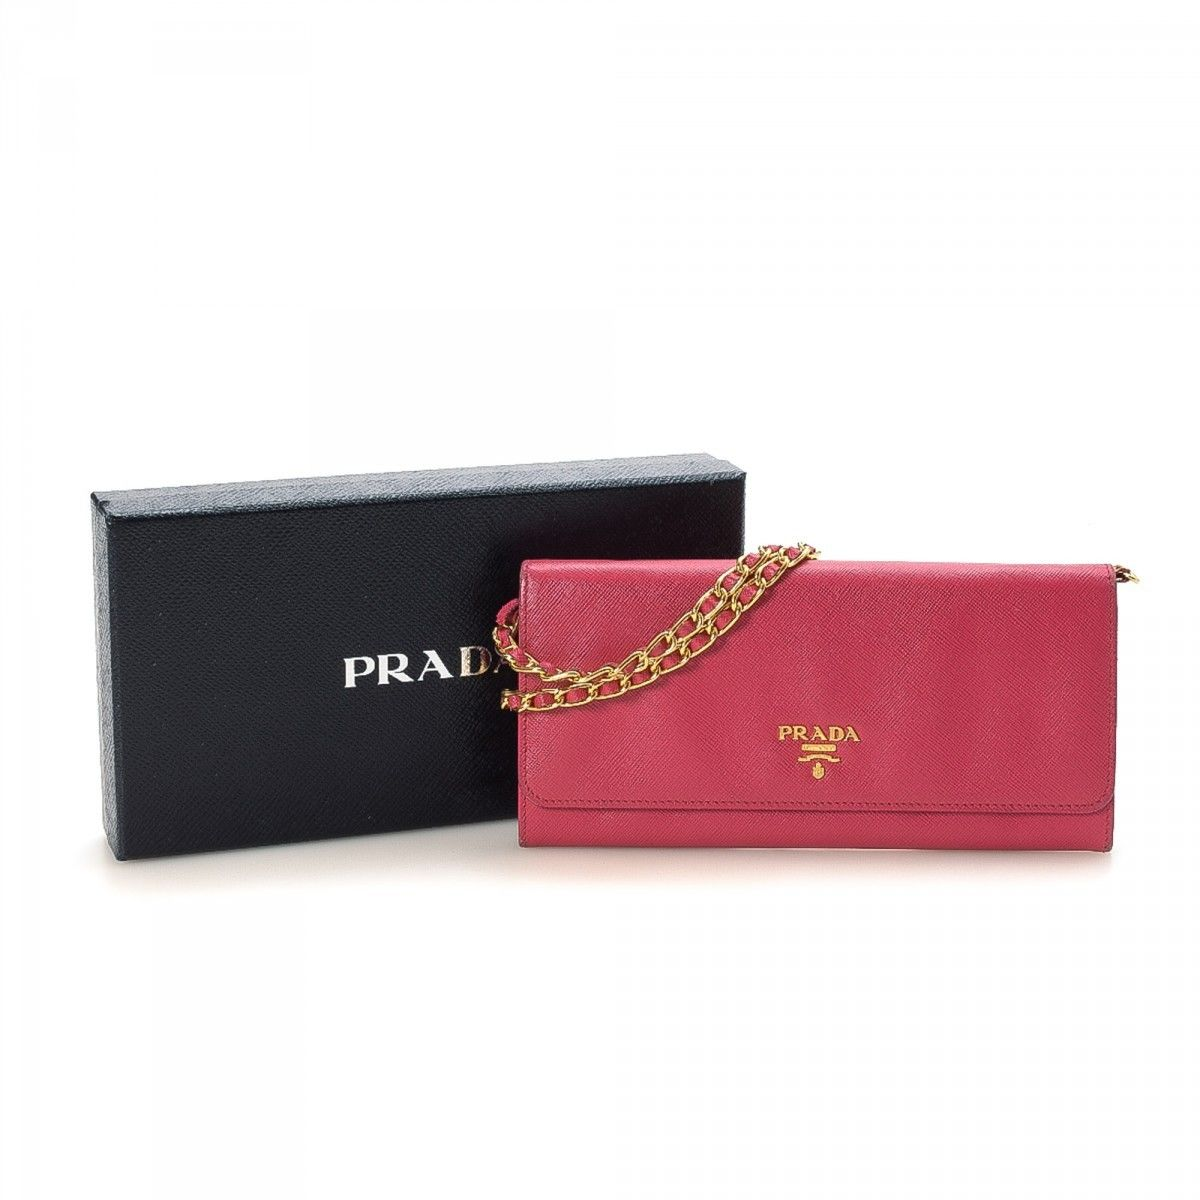 c37a9a3d2f3f87 Prada Chain Wallet Saffiano Lux Leather - LXRandCo - Pre-Owned ...